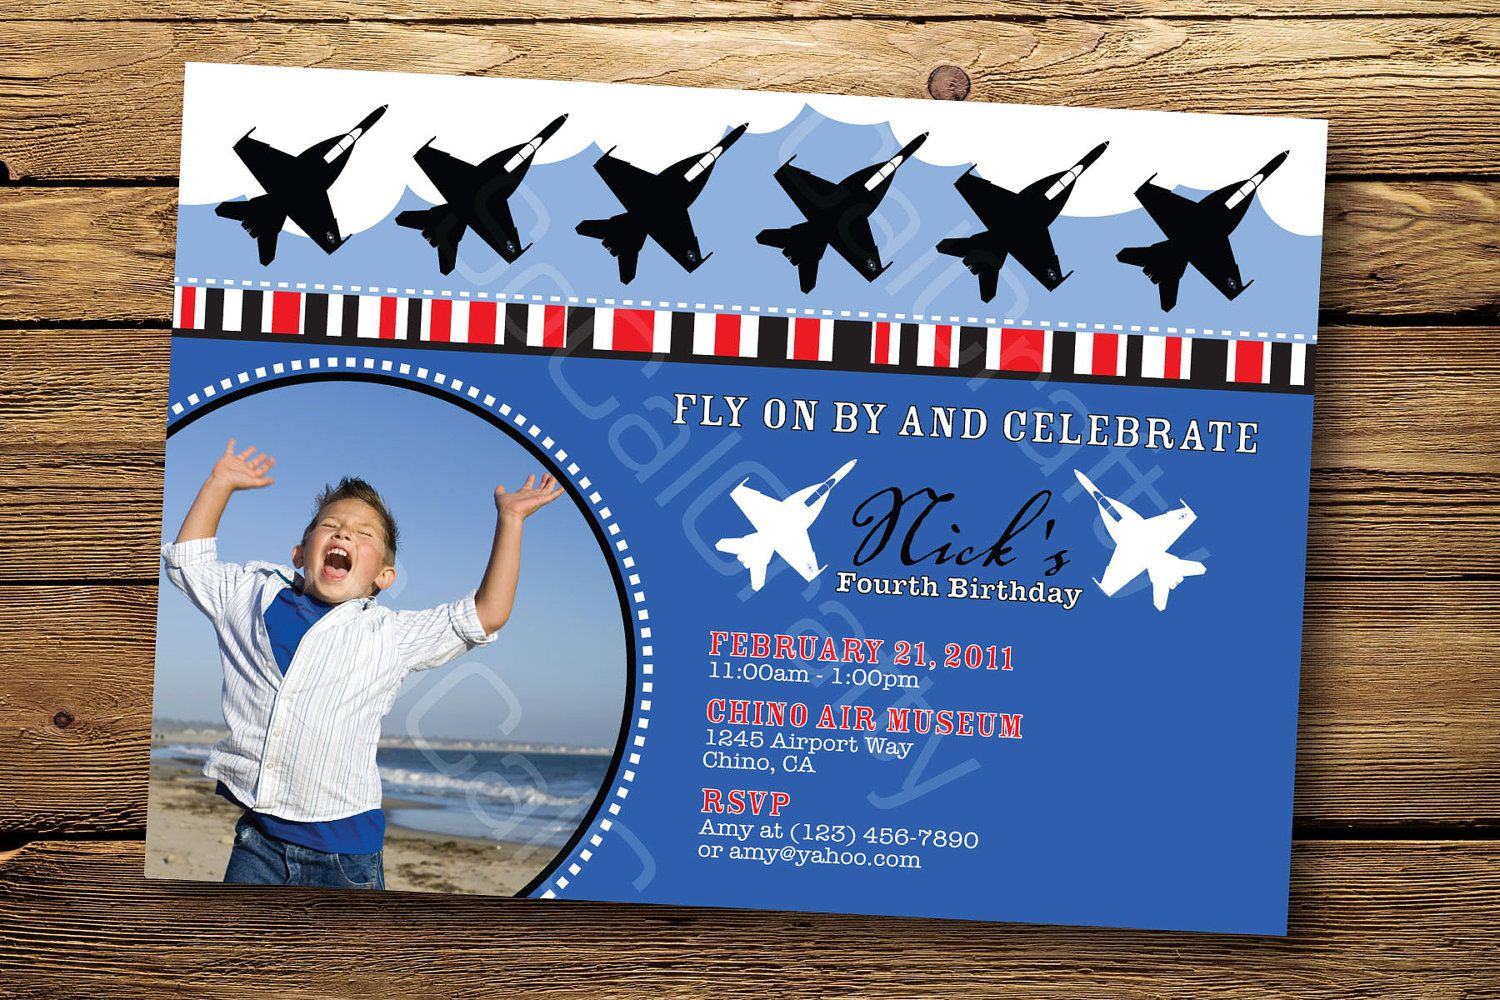 Military Amy Navy Air Force Airplane Birthday Party Invitation